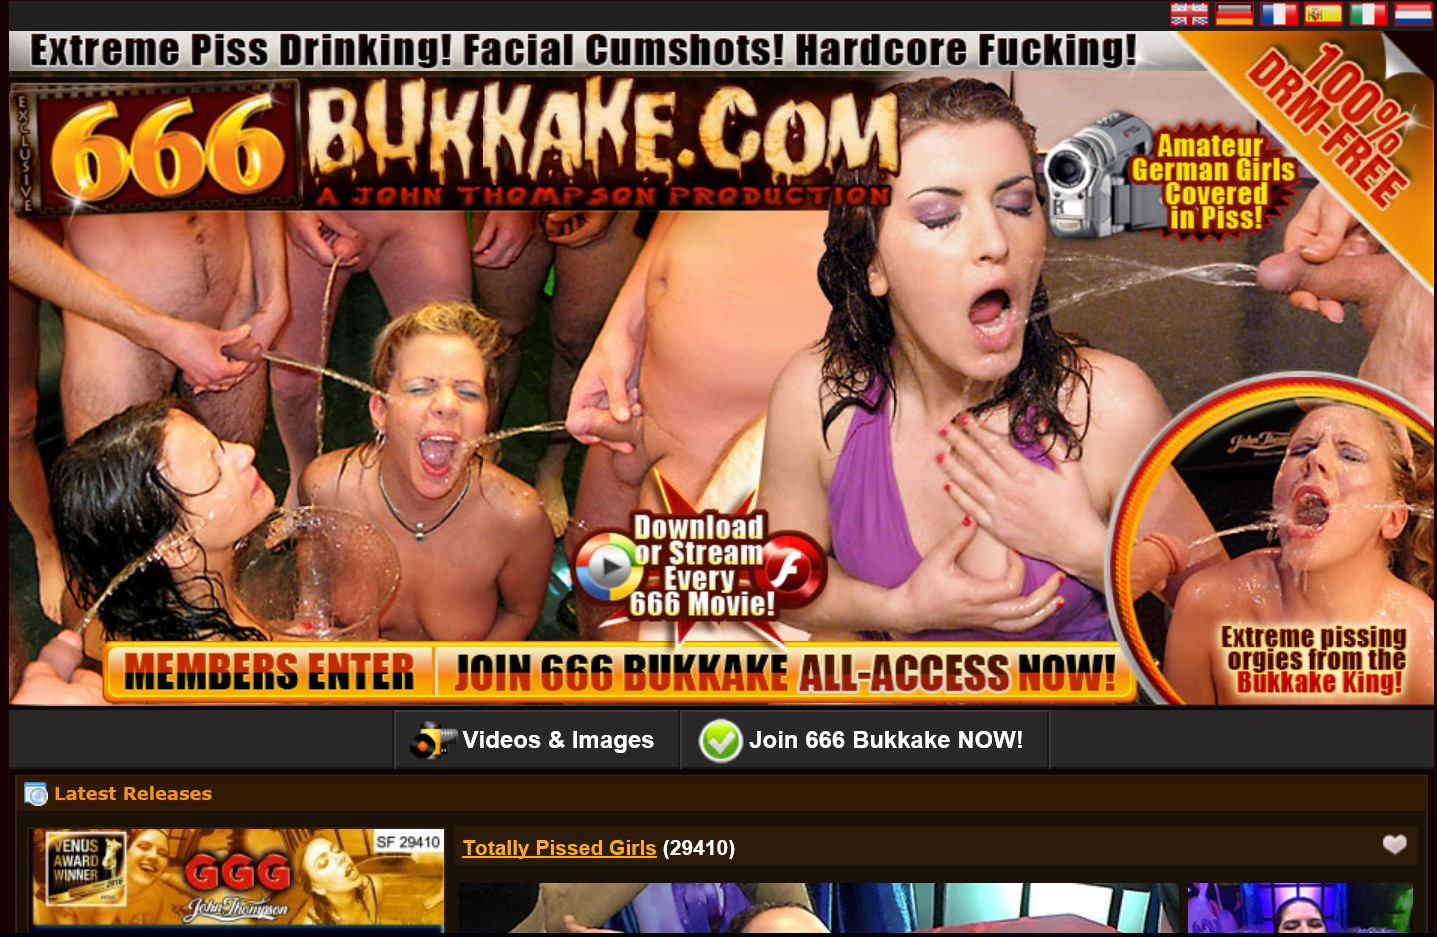 discuss impossible anal threesome full movies removed (has mixed